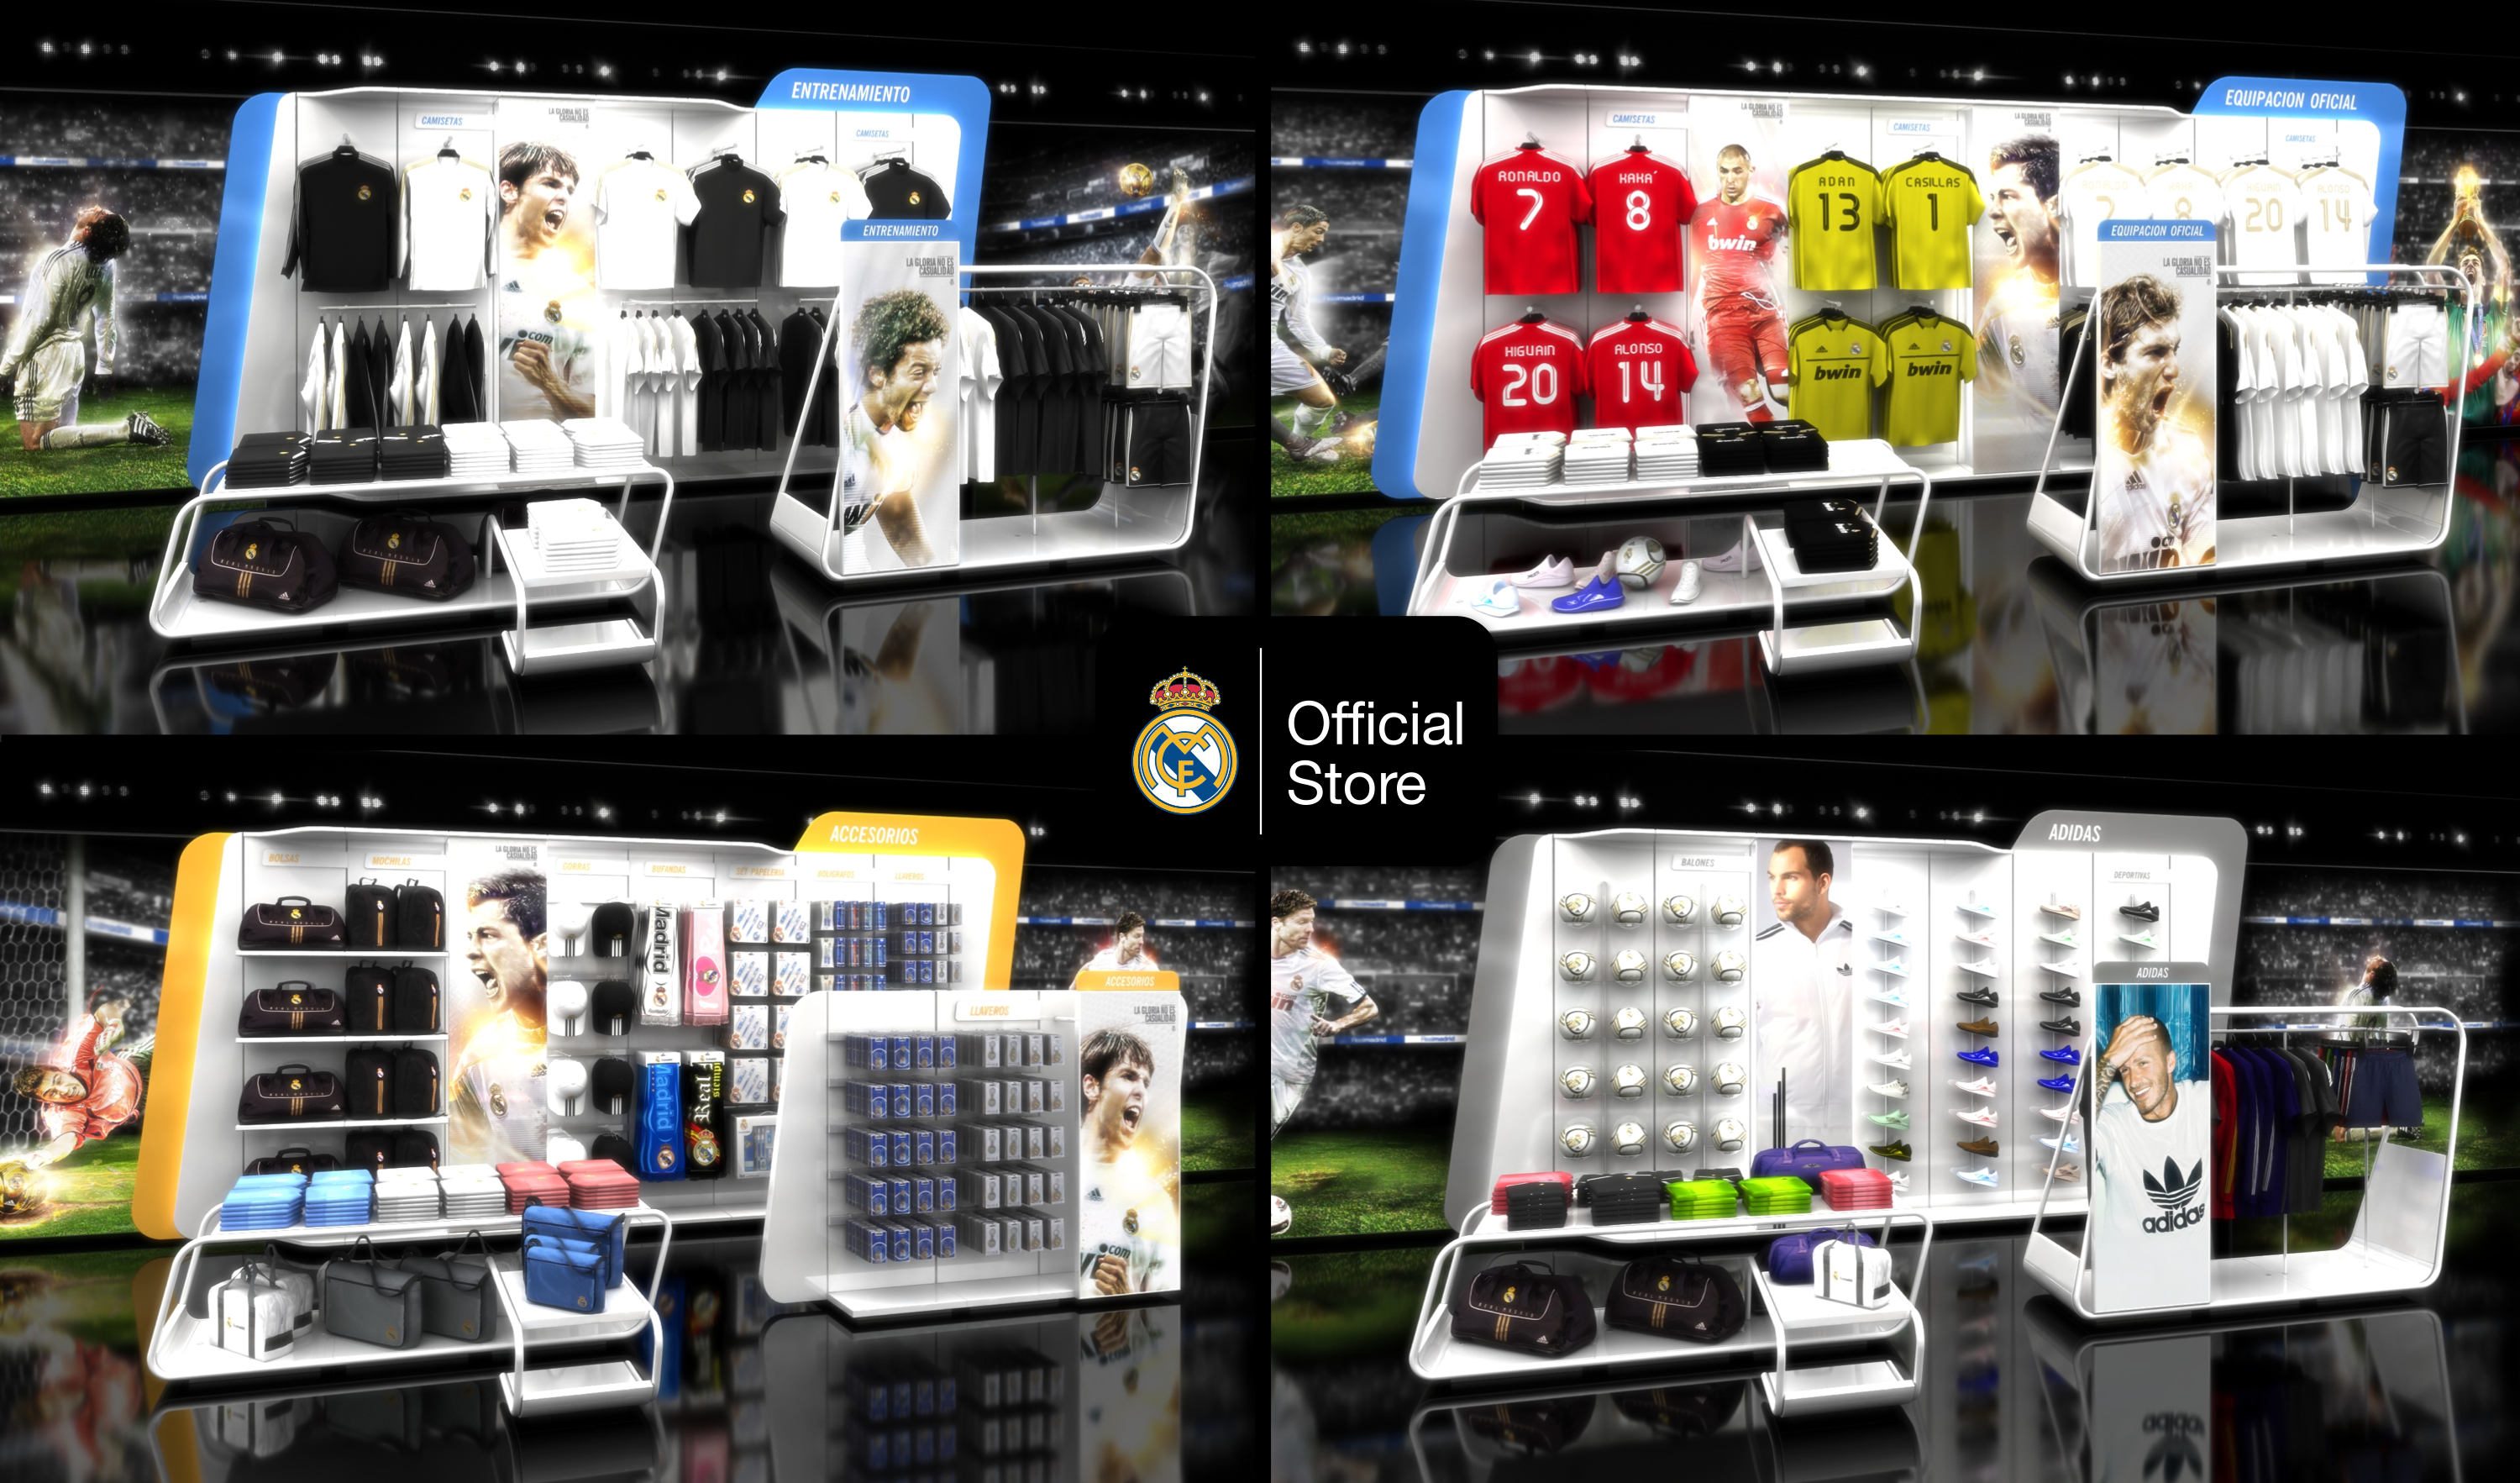 ed459d679 Download this Sanzpont Arquitectura Real Madrid Official Store Gran Via  picture